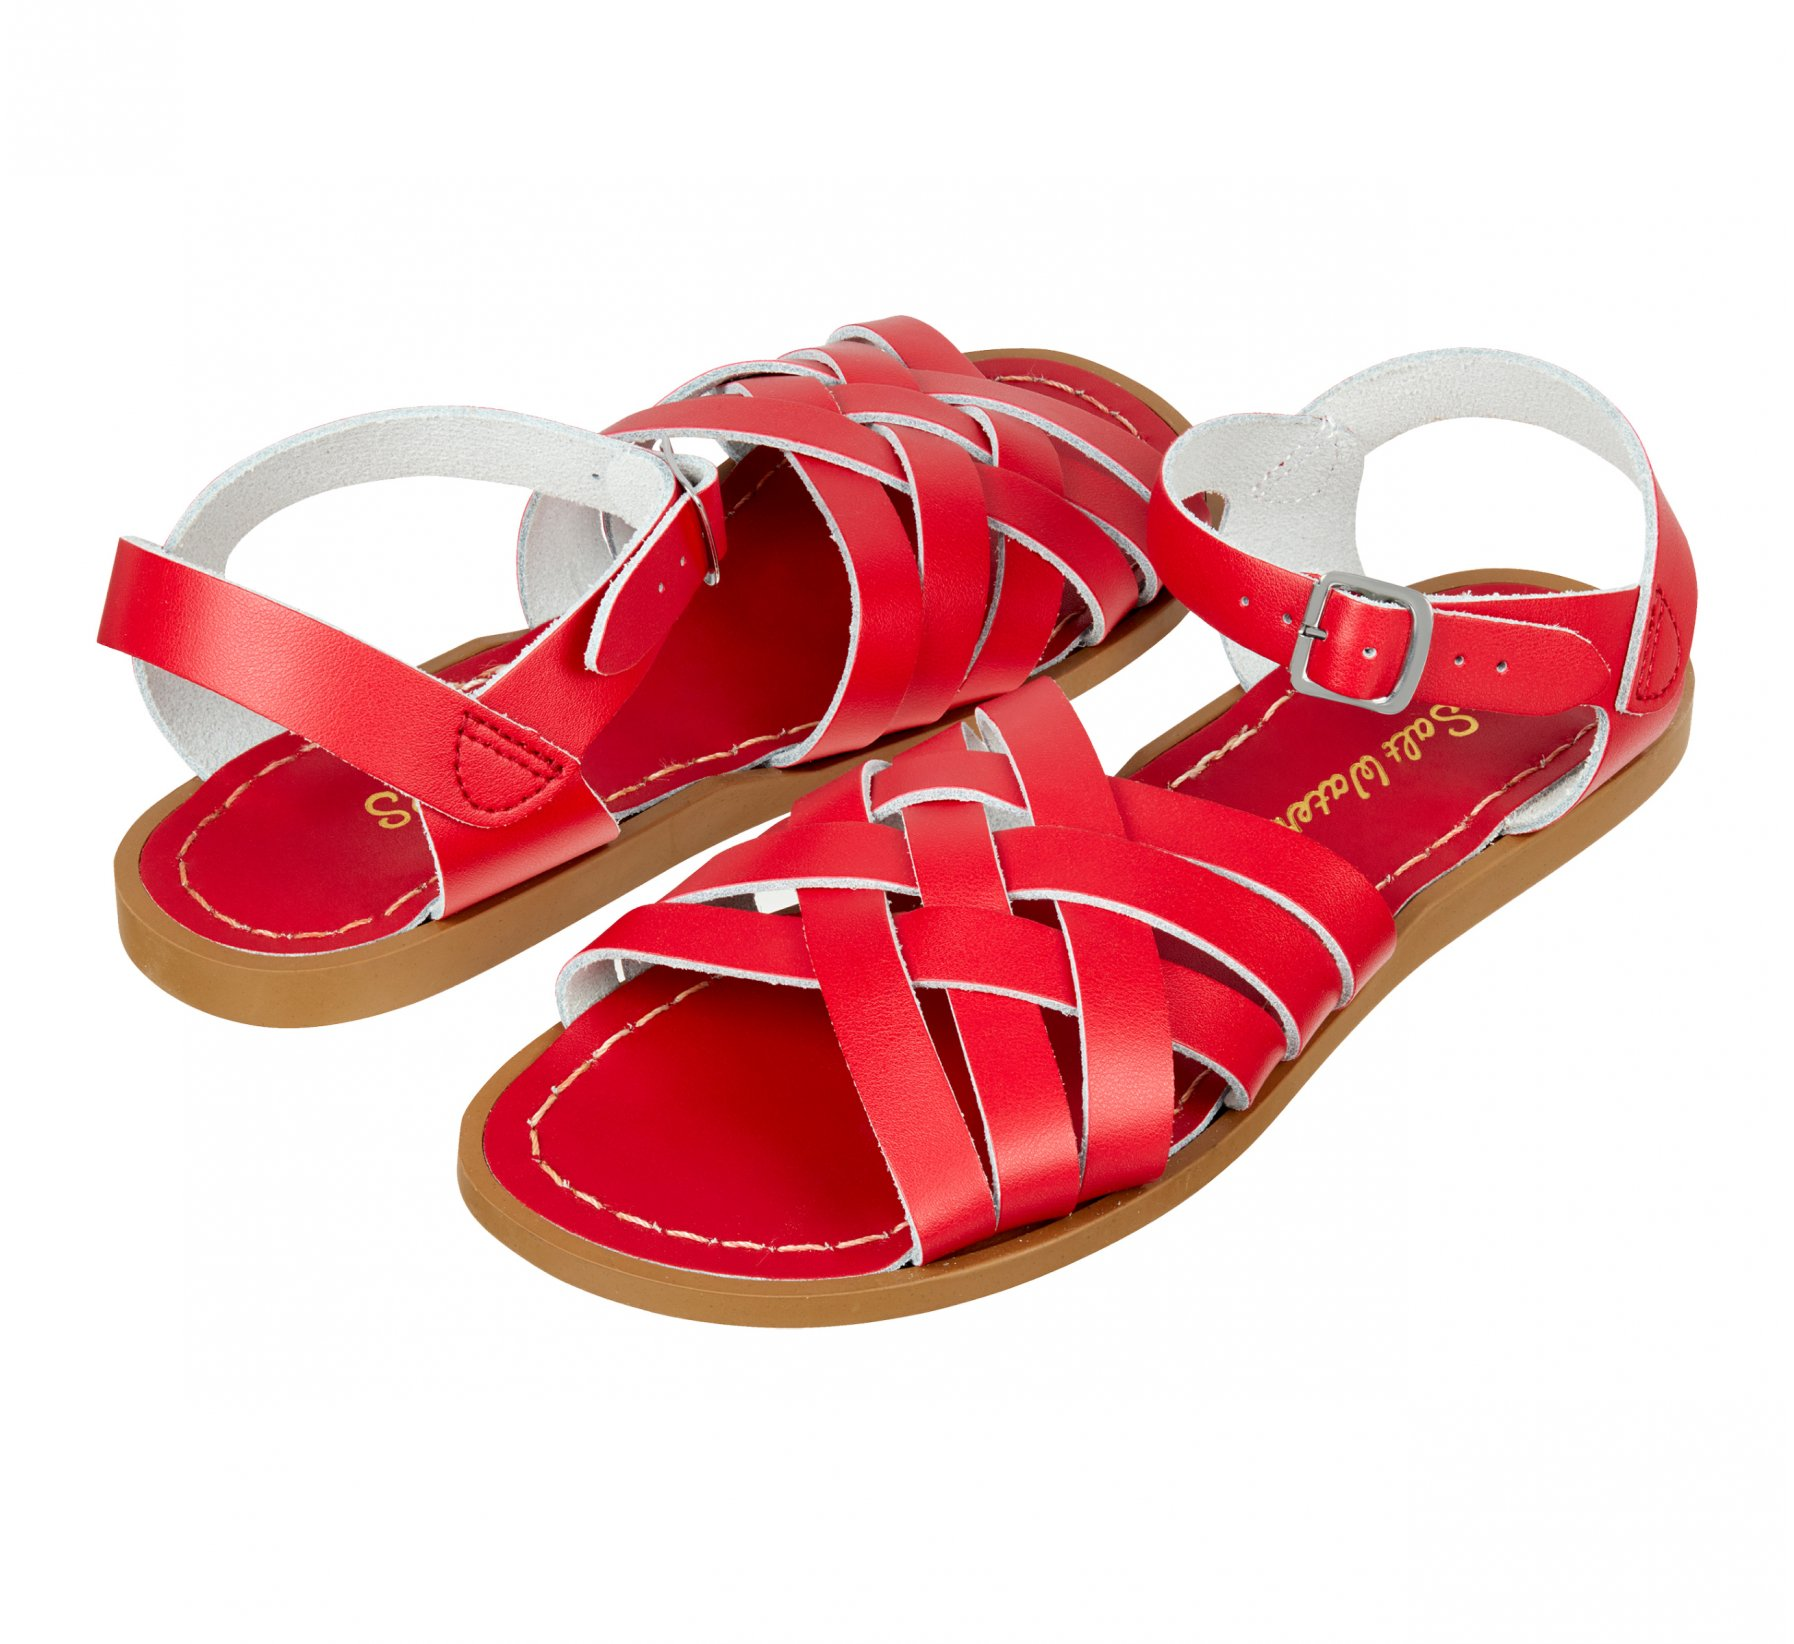 Retro Red  - Salt Water Sandals